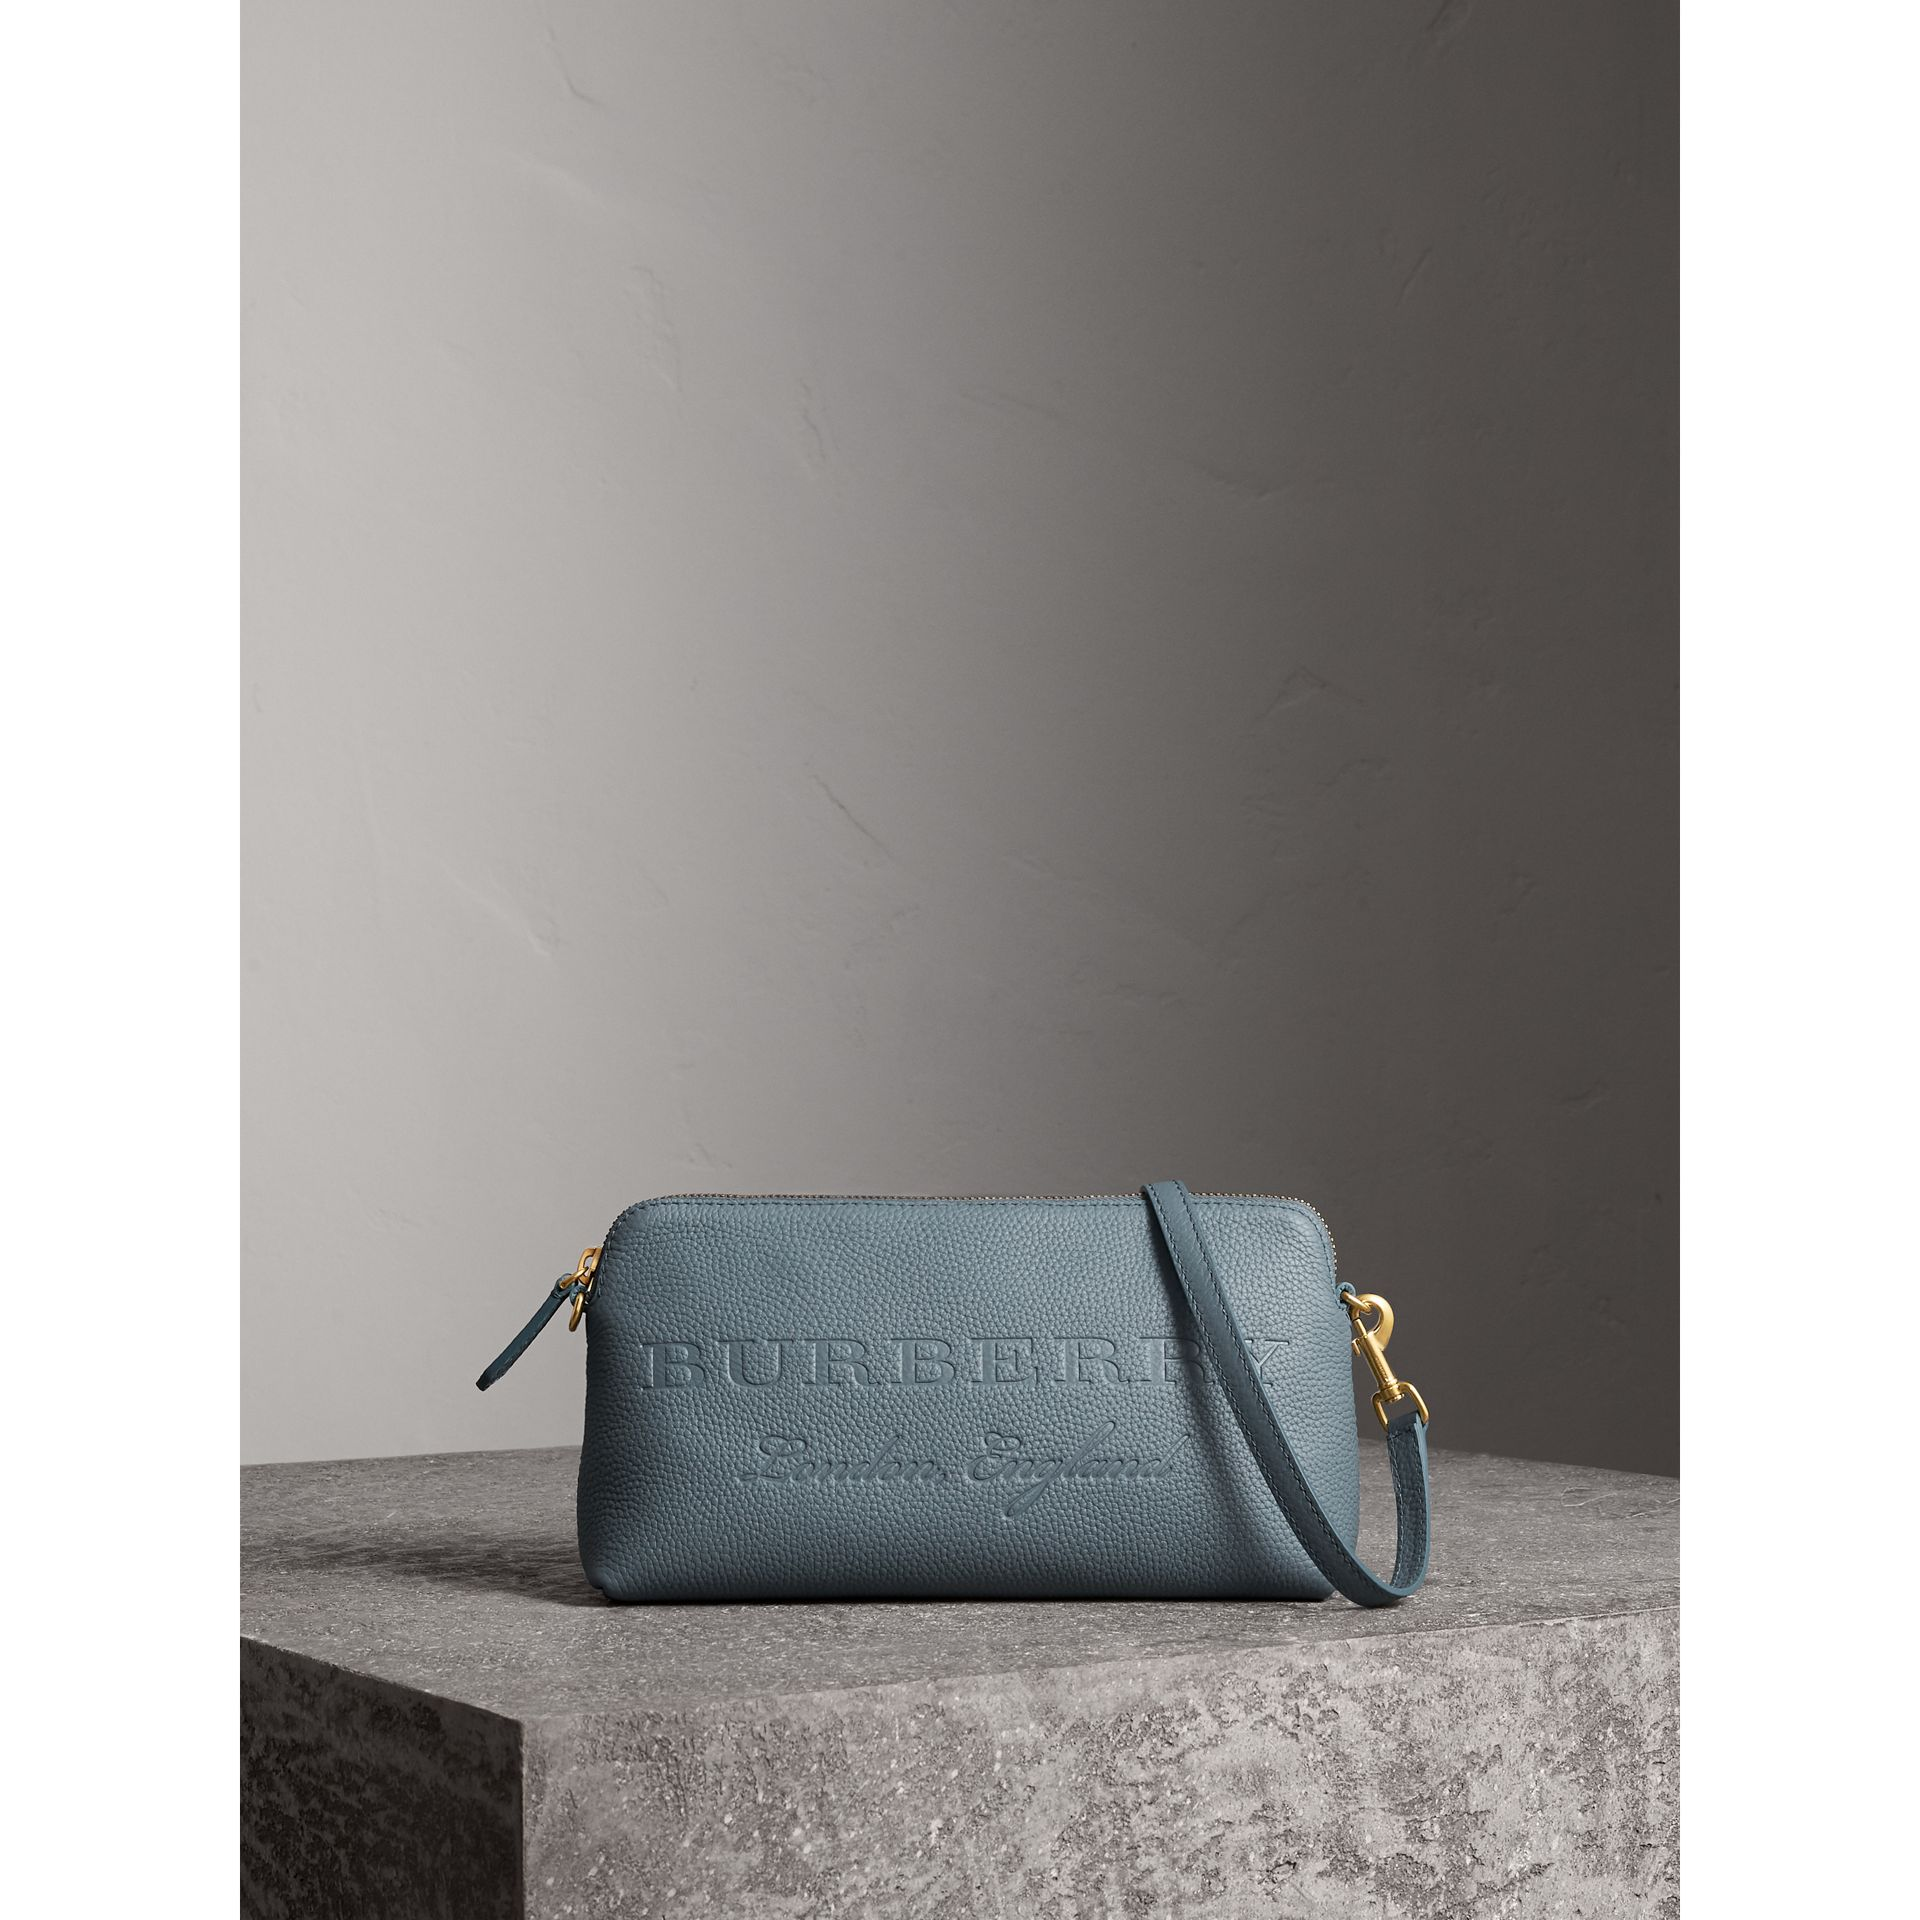 Embossed Leather Clutch Bag in Dusty Teal Blue - Women | Burberry Canada - gallery image 1